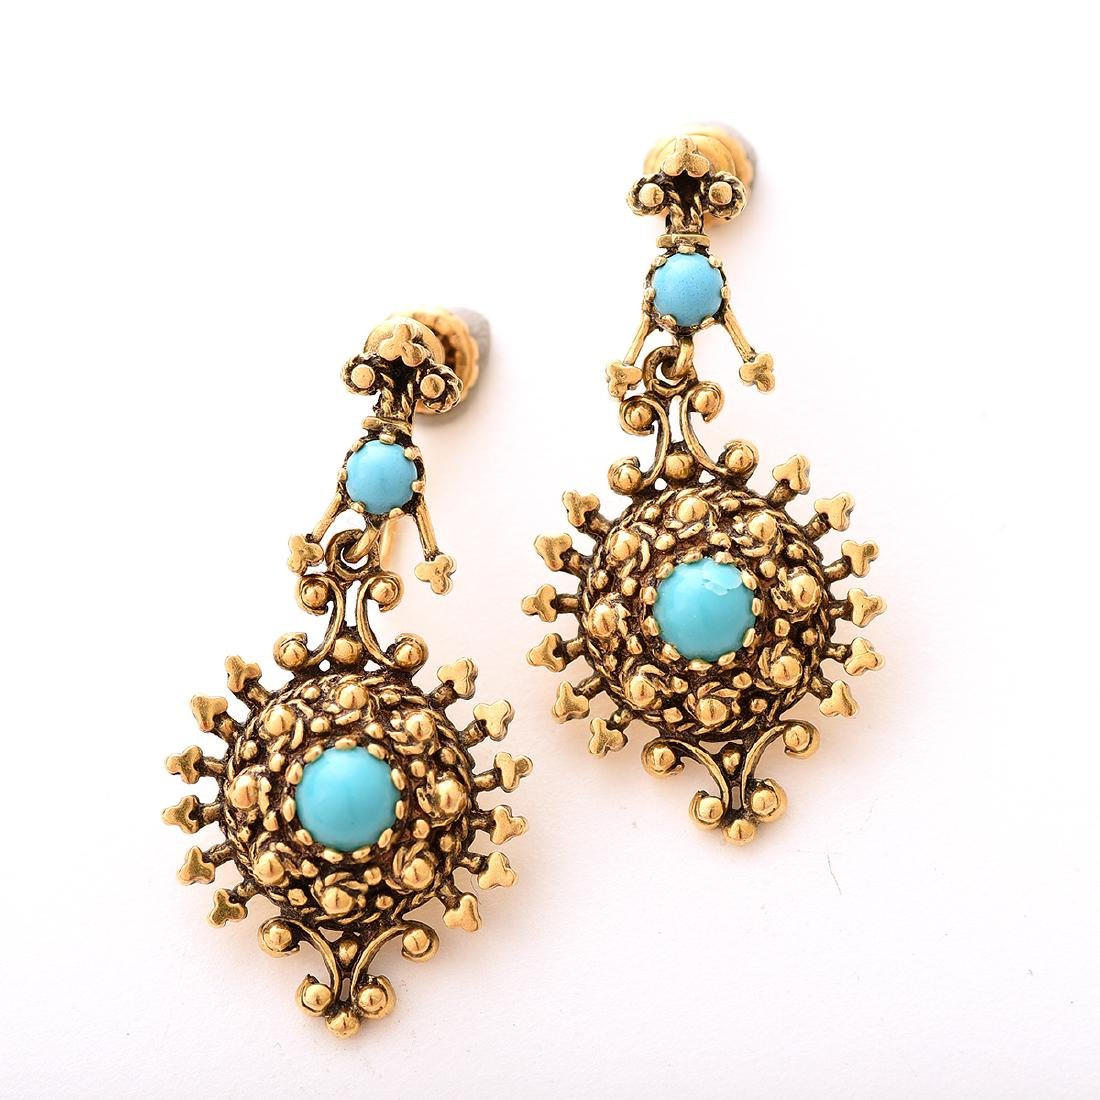 Reproduction Turquoise, Yellow Gold Jewelry Suite. - 2